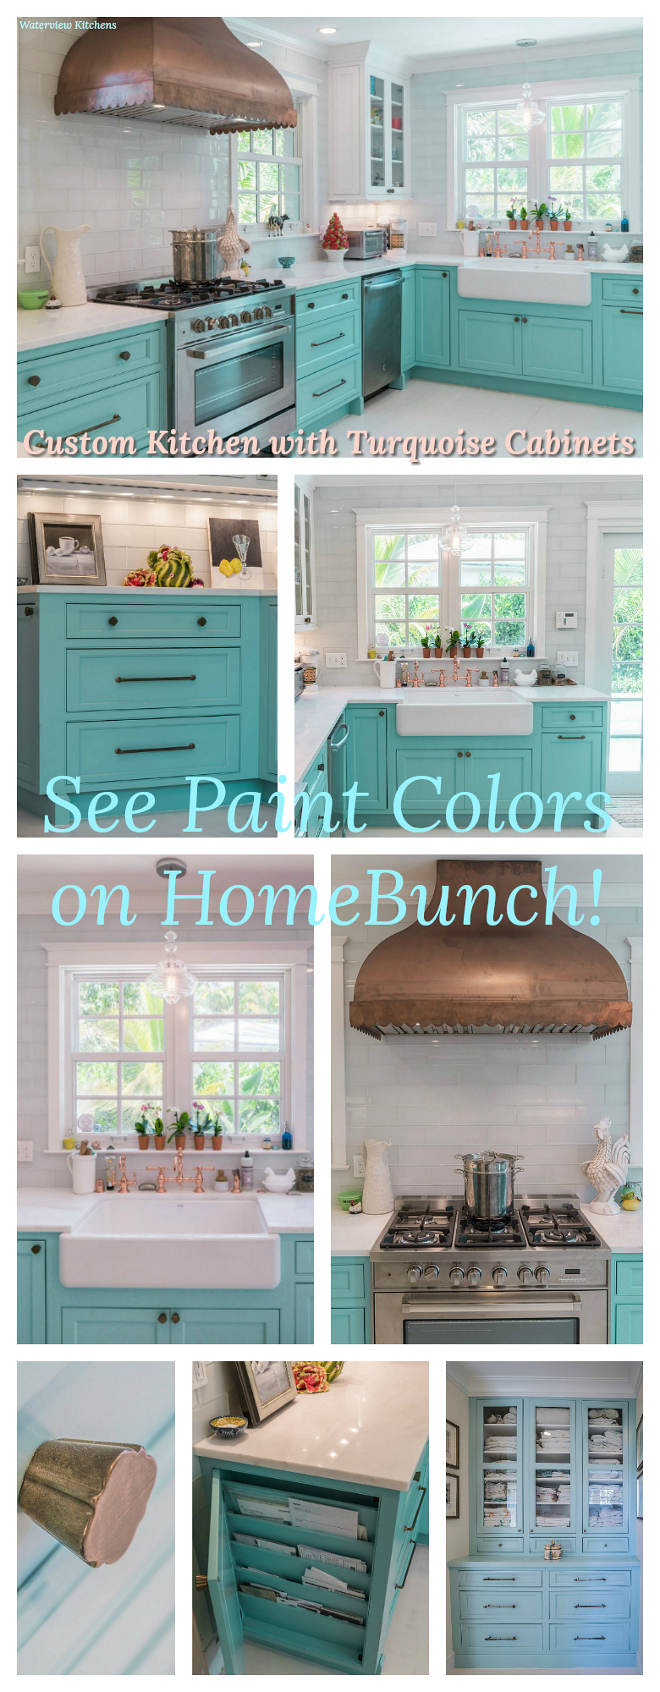 Custom Kitchen with Turquoise Cabinets Paint color and sources on Home Bunch